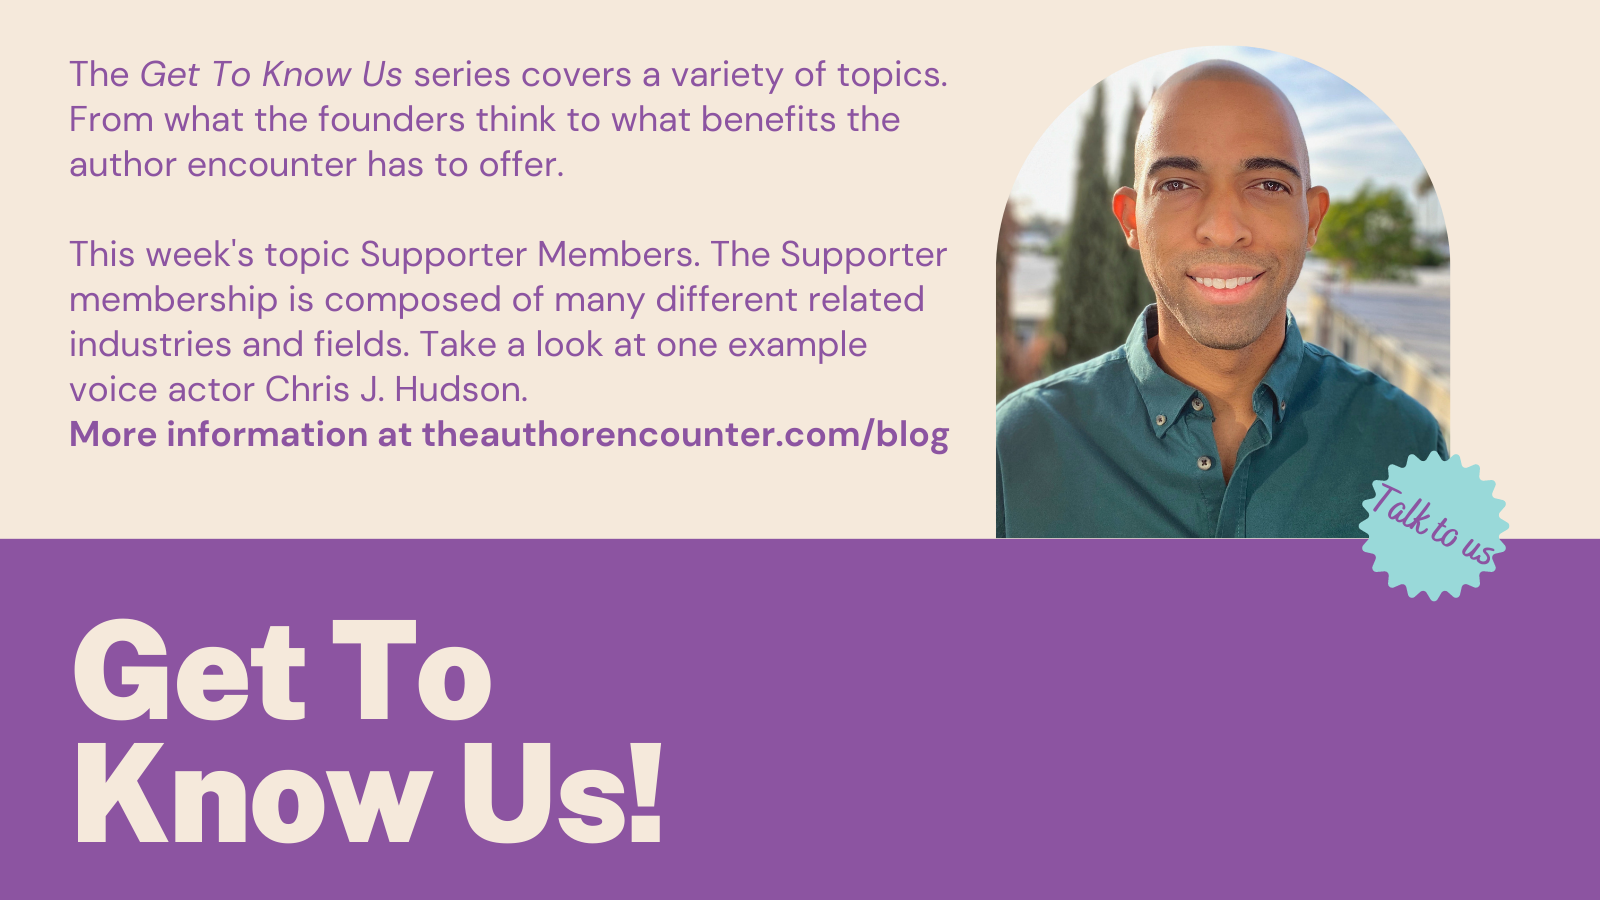 blog banner for the Get to know us series